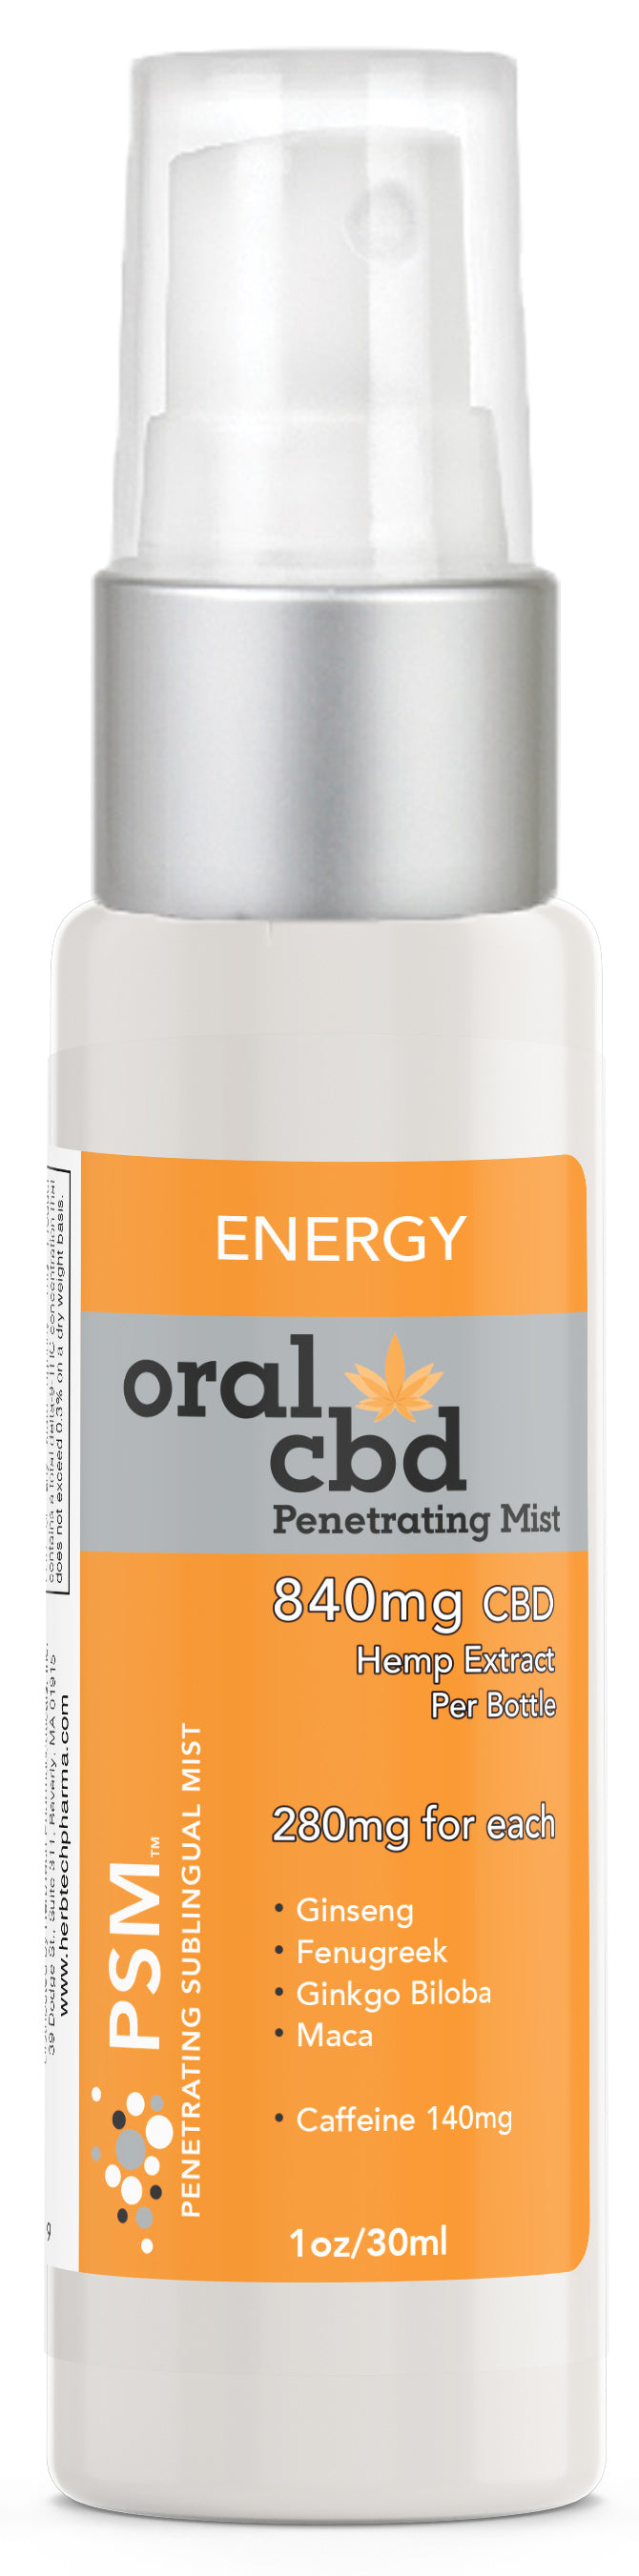 Oral CBD Spray: Energy